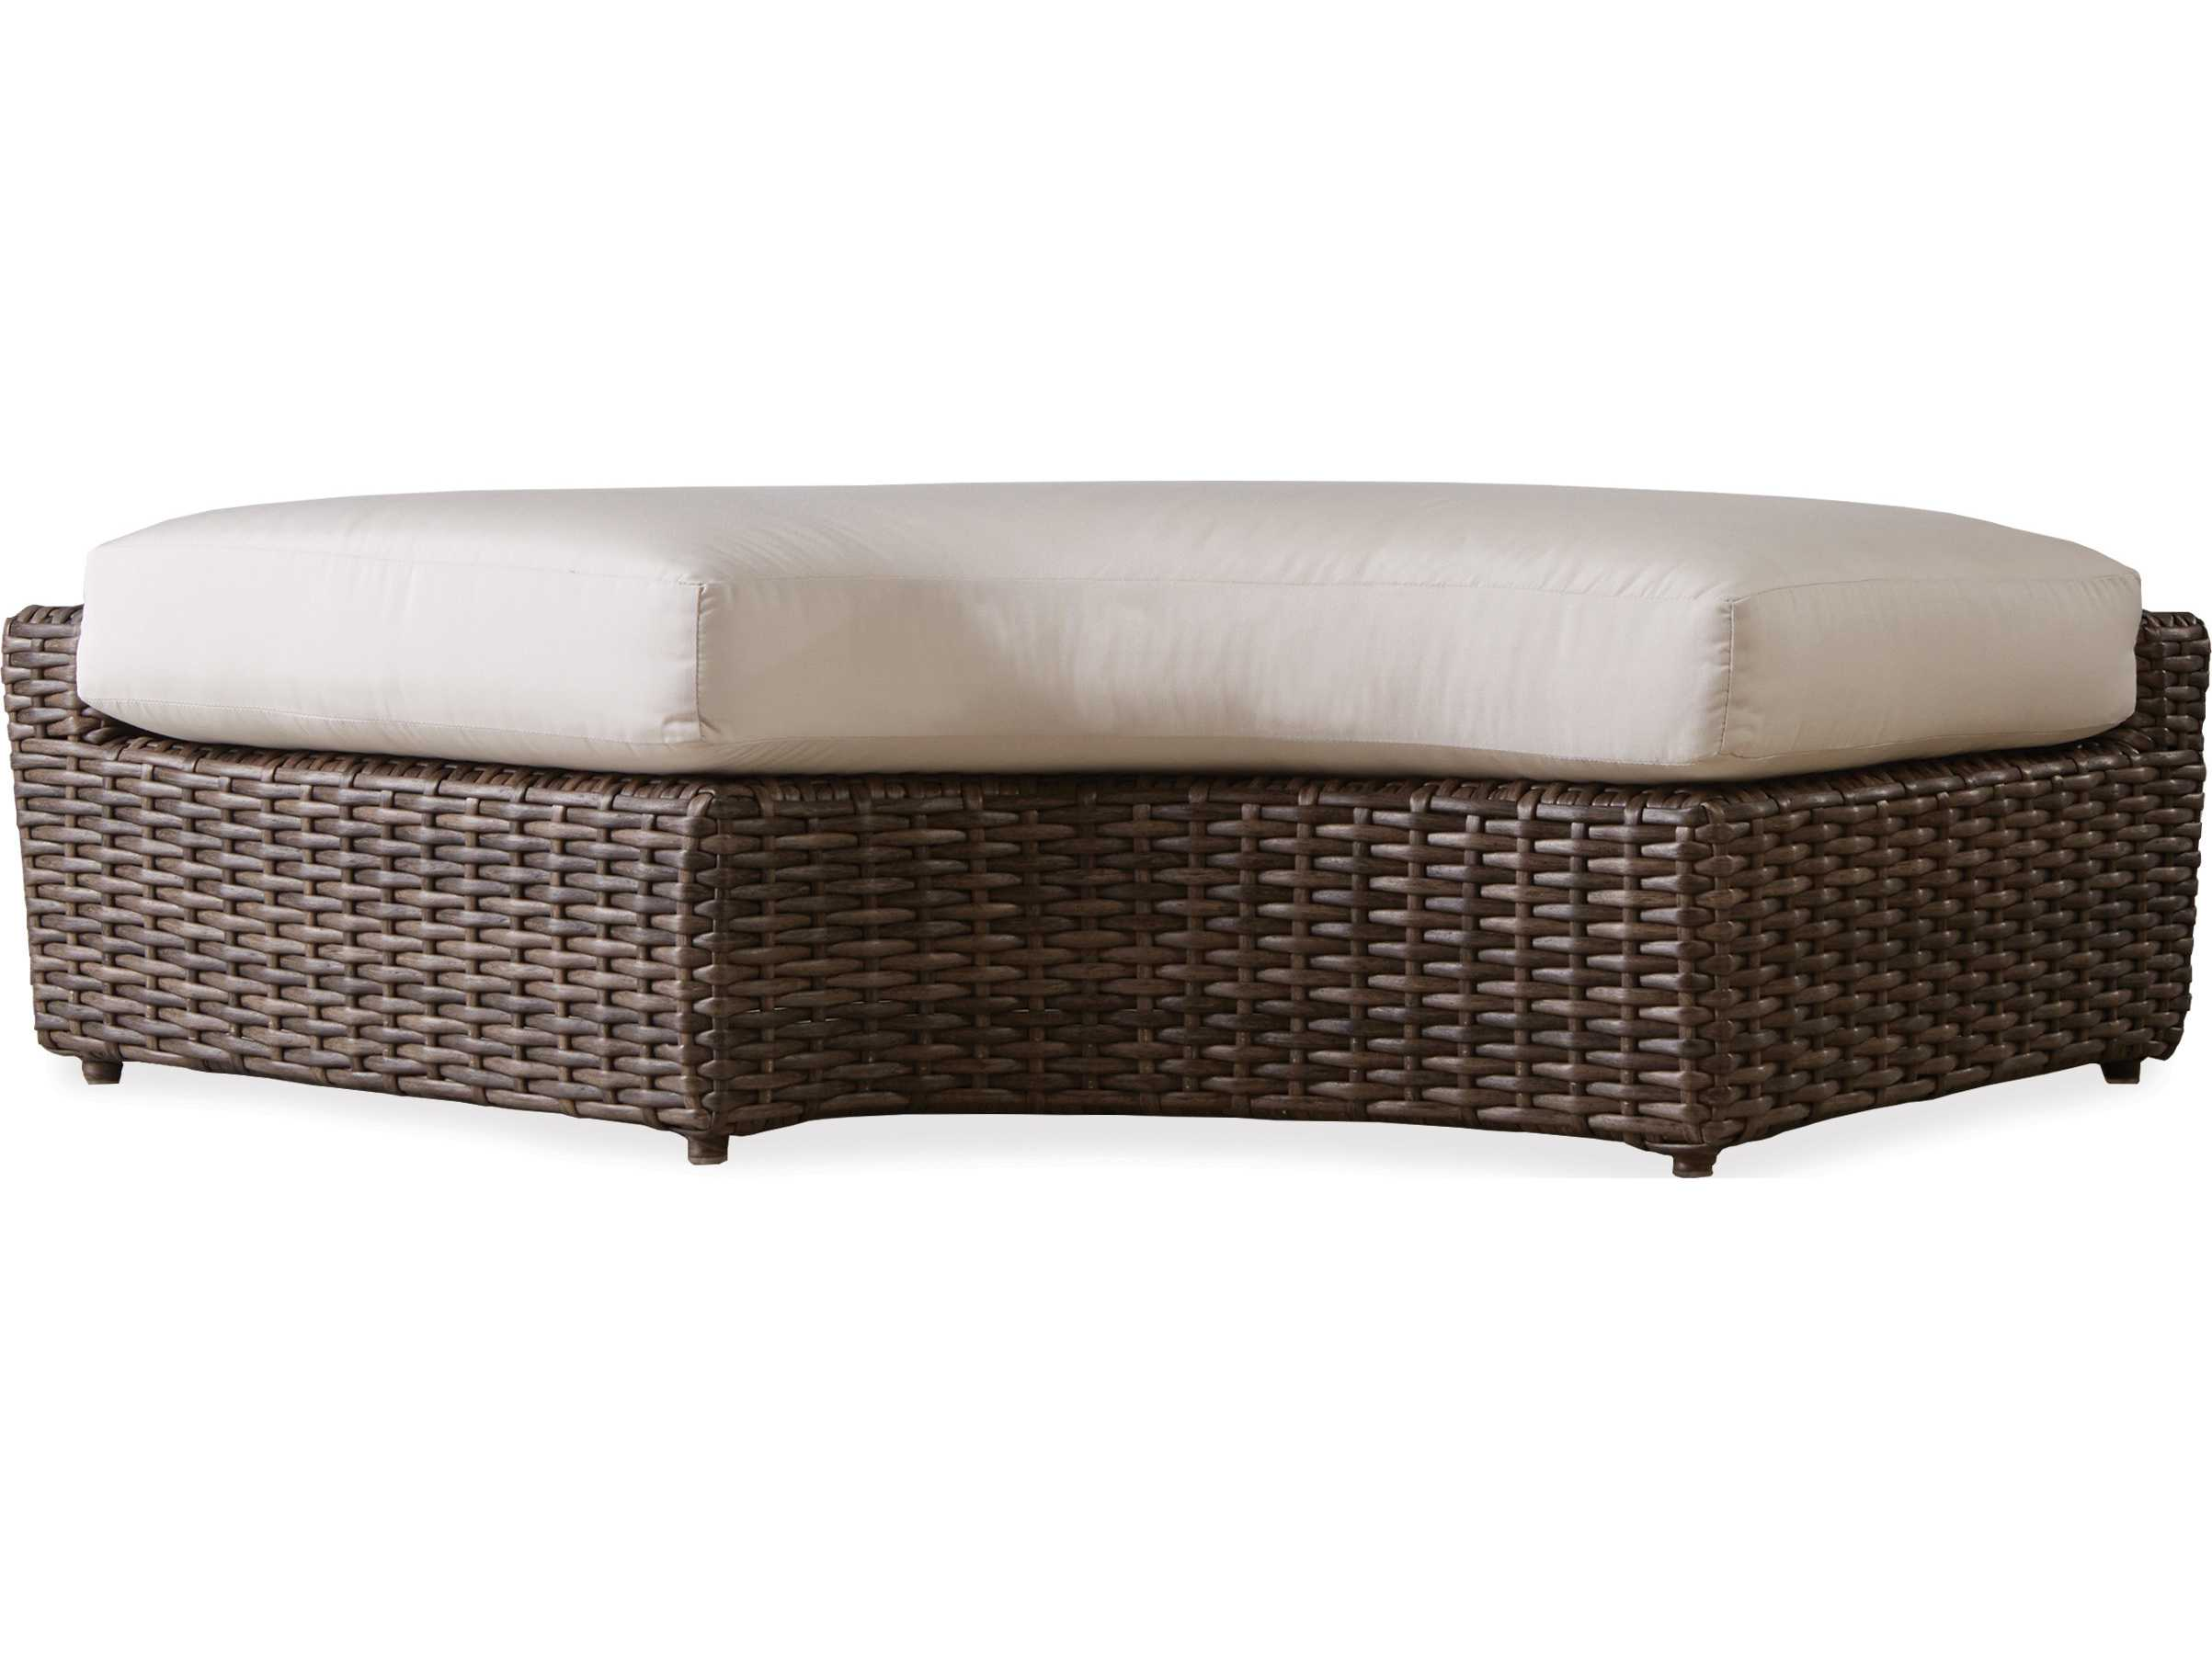 Lloyd Flanders Largo Wicker Left Curved Bench 241039